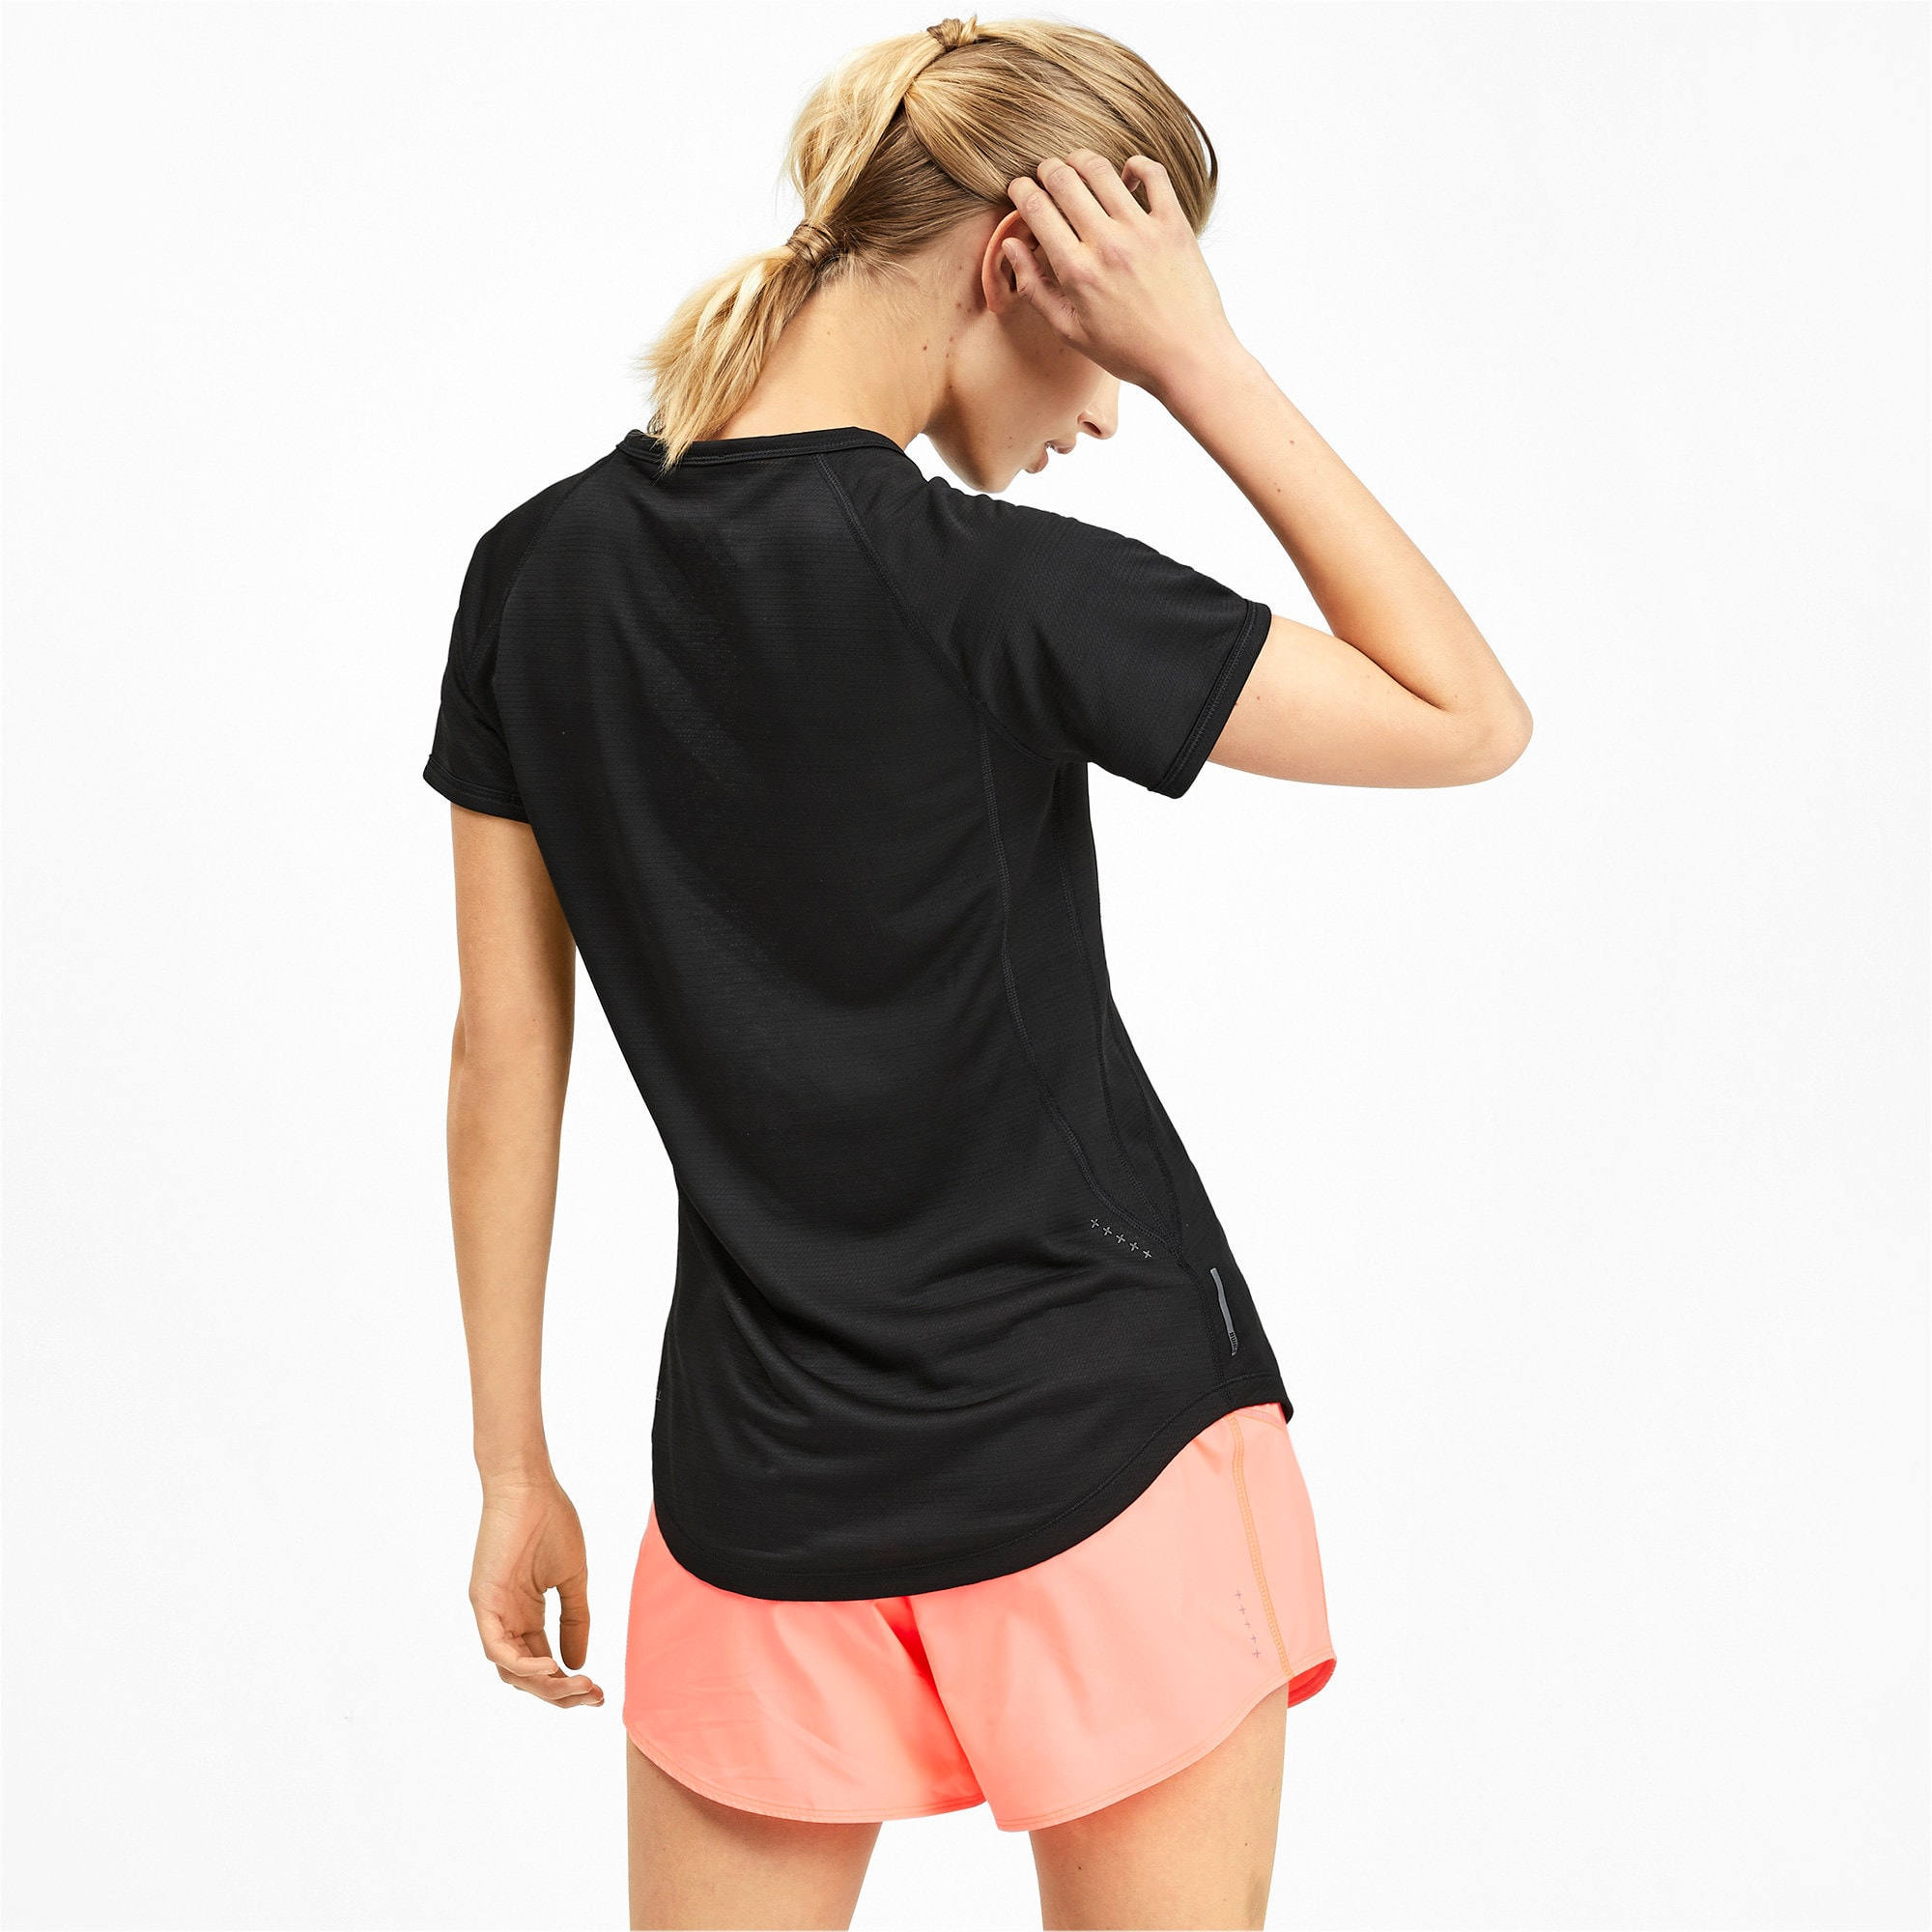 Thumbnail 2 of Get Fast Thermo-R+ Women's Tee, Puma Black, medium-IND